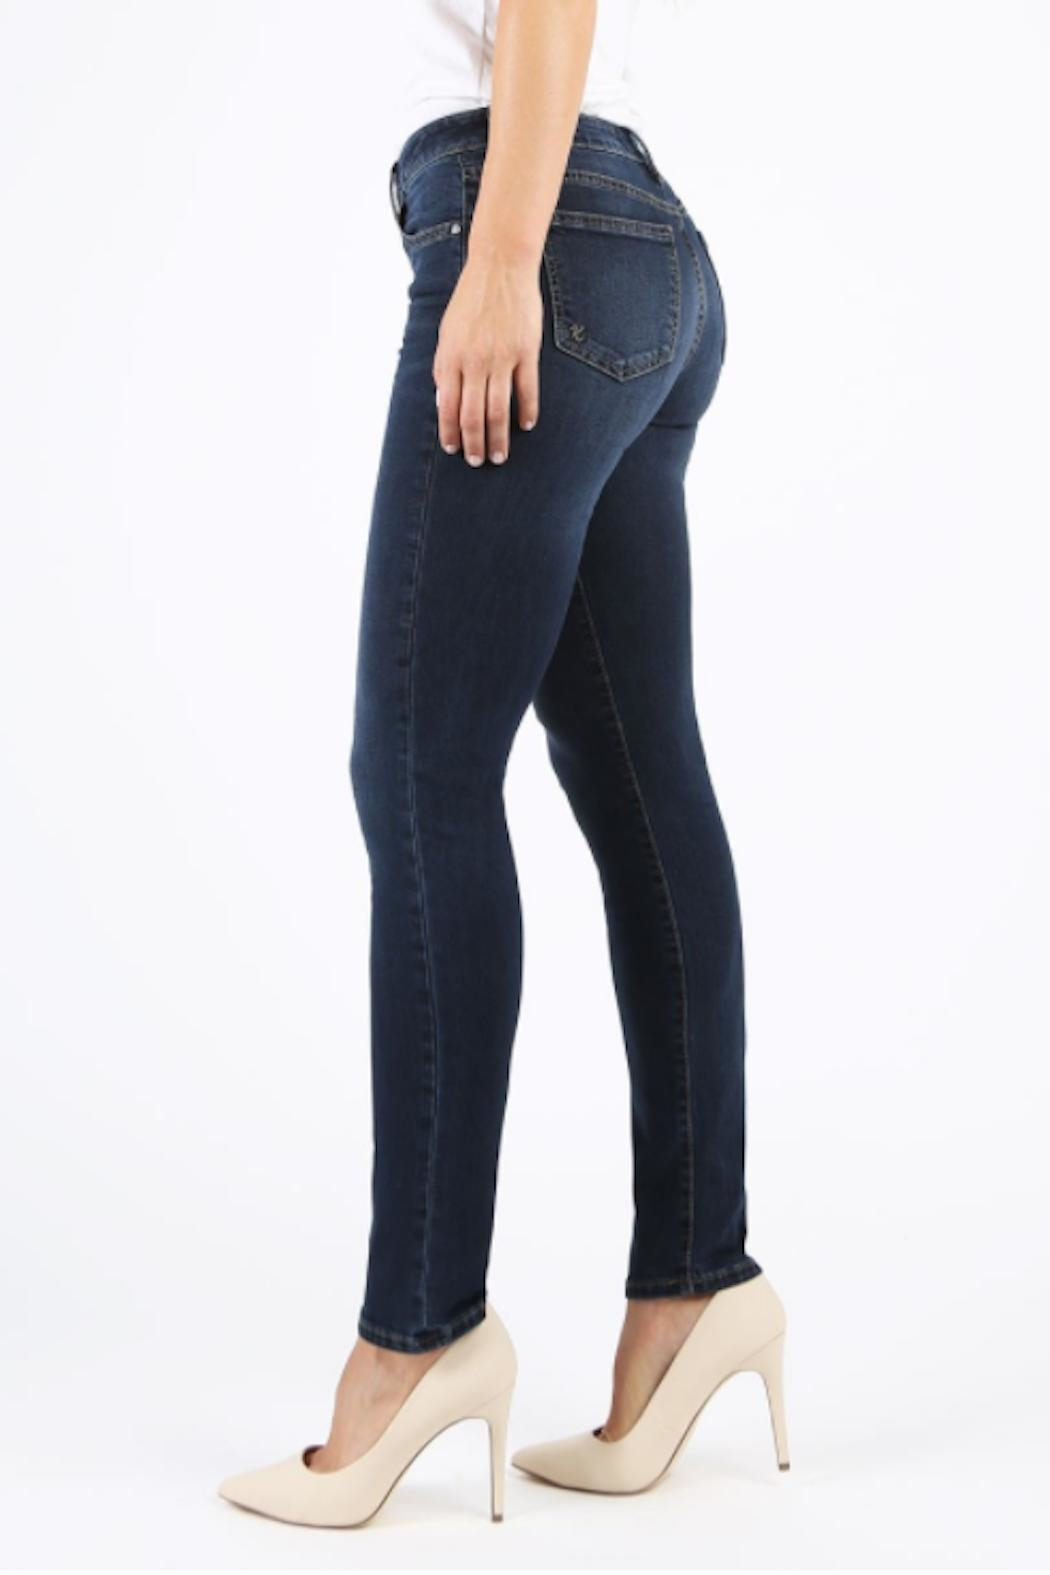 Kut from the Kloth Diana Kurvy Skinnies - Side Cropped Image